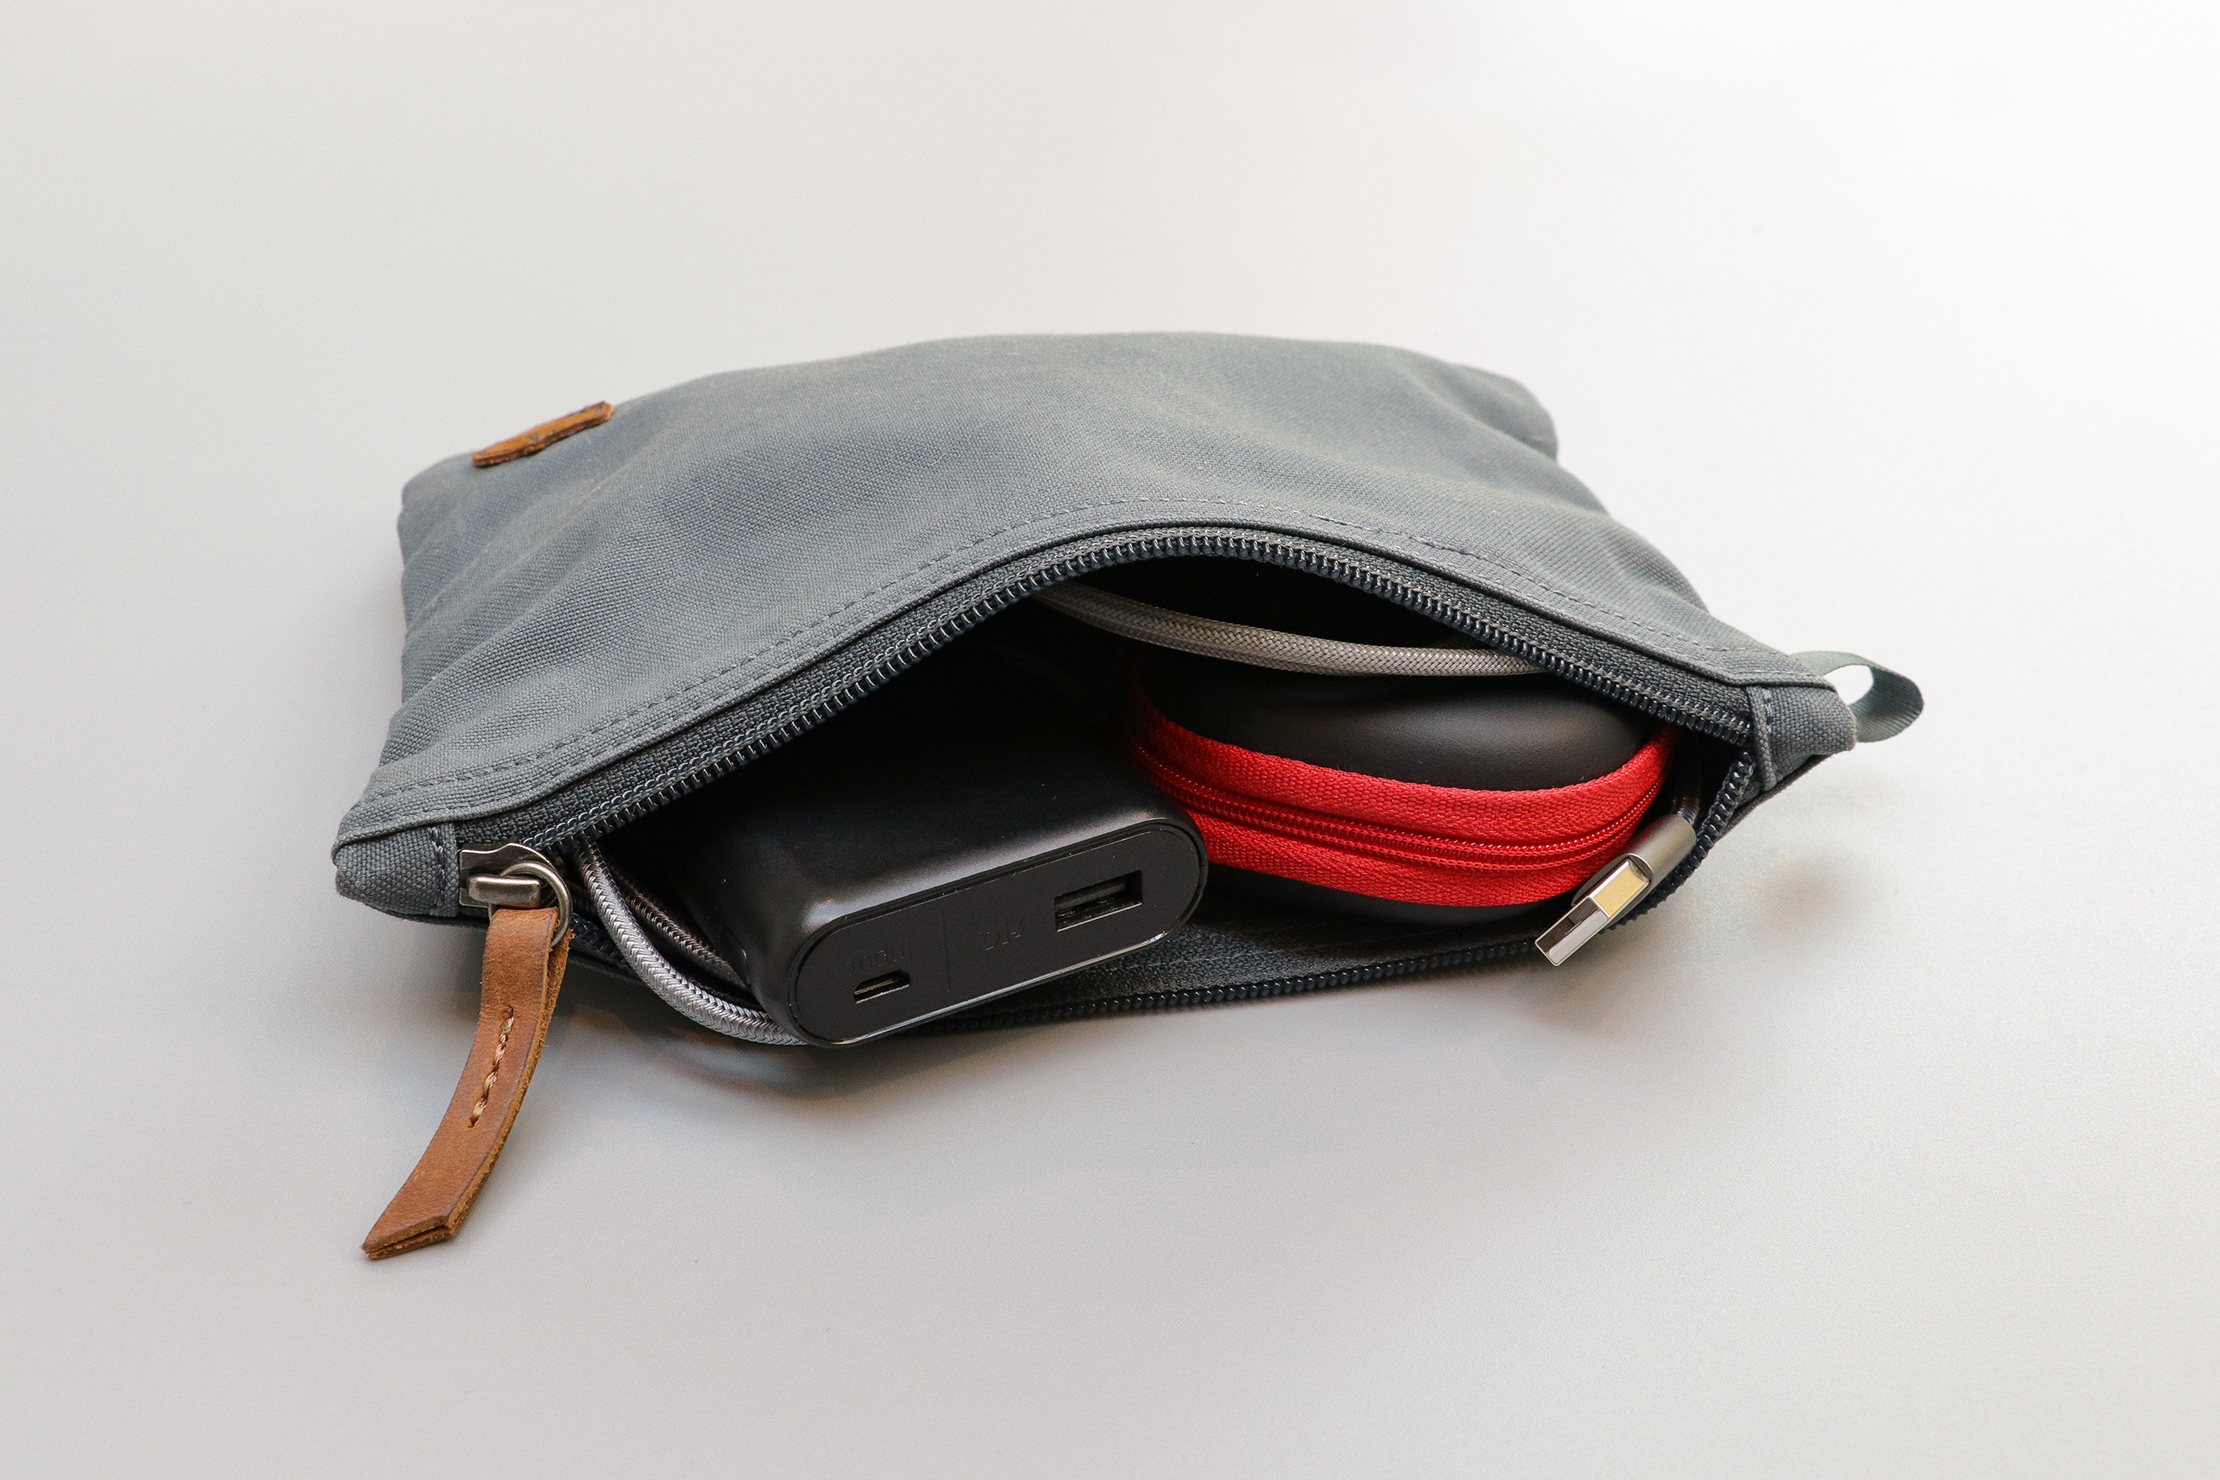 Fjallraven Gear Pocket Full Of Tech Gear